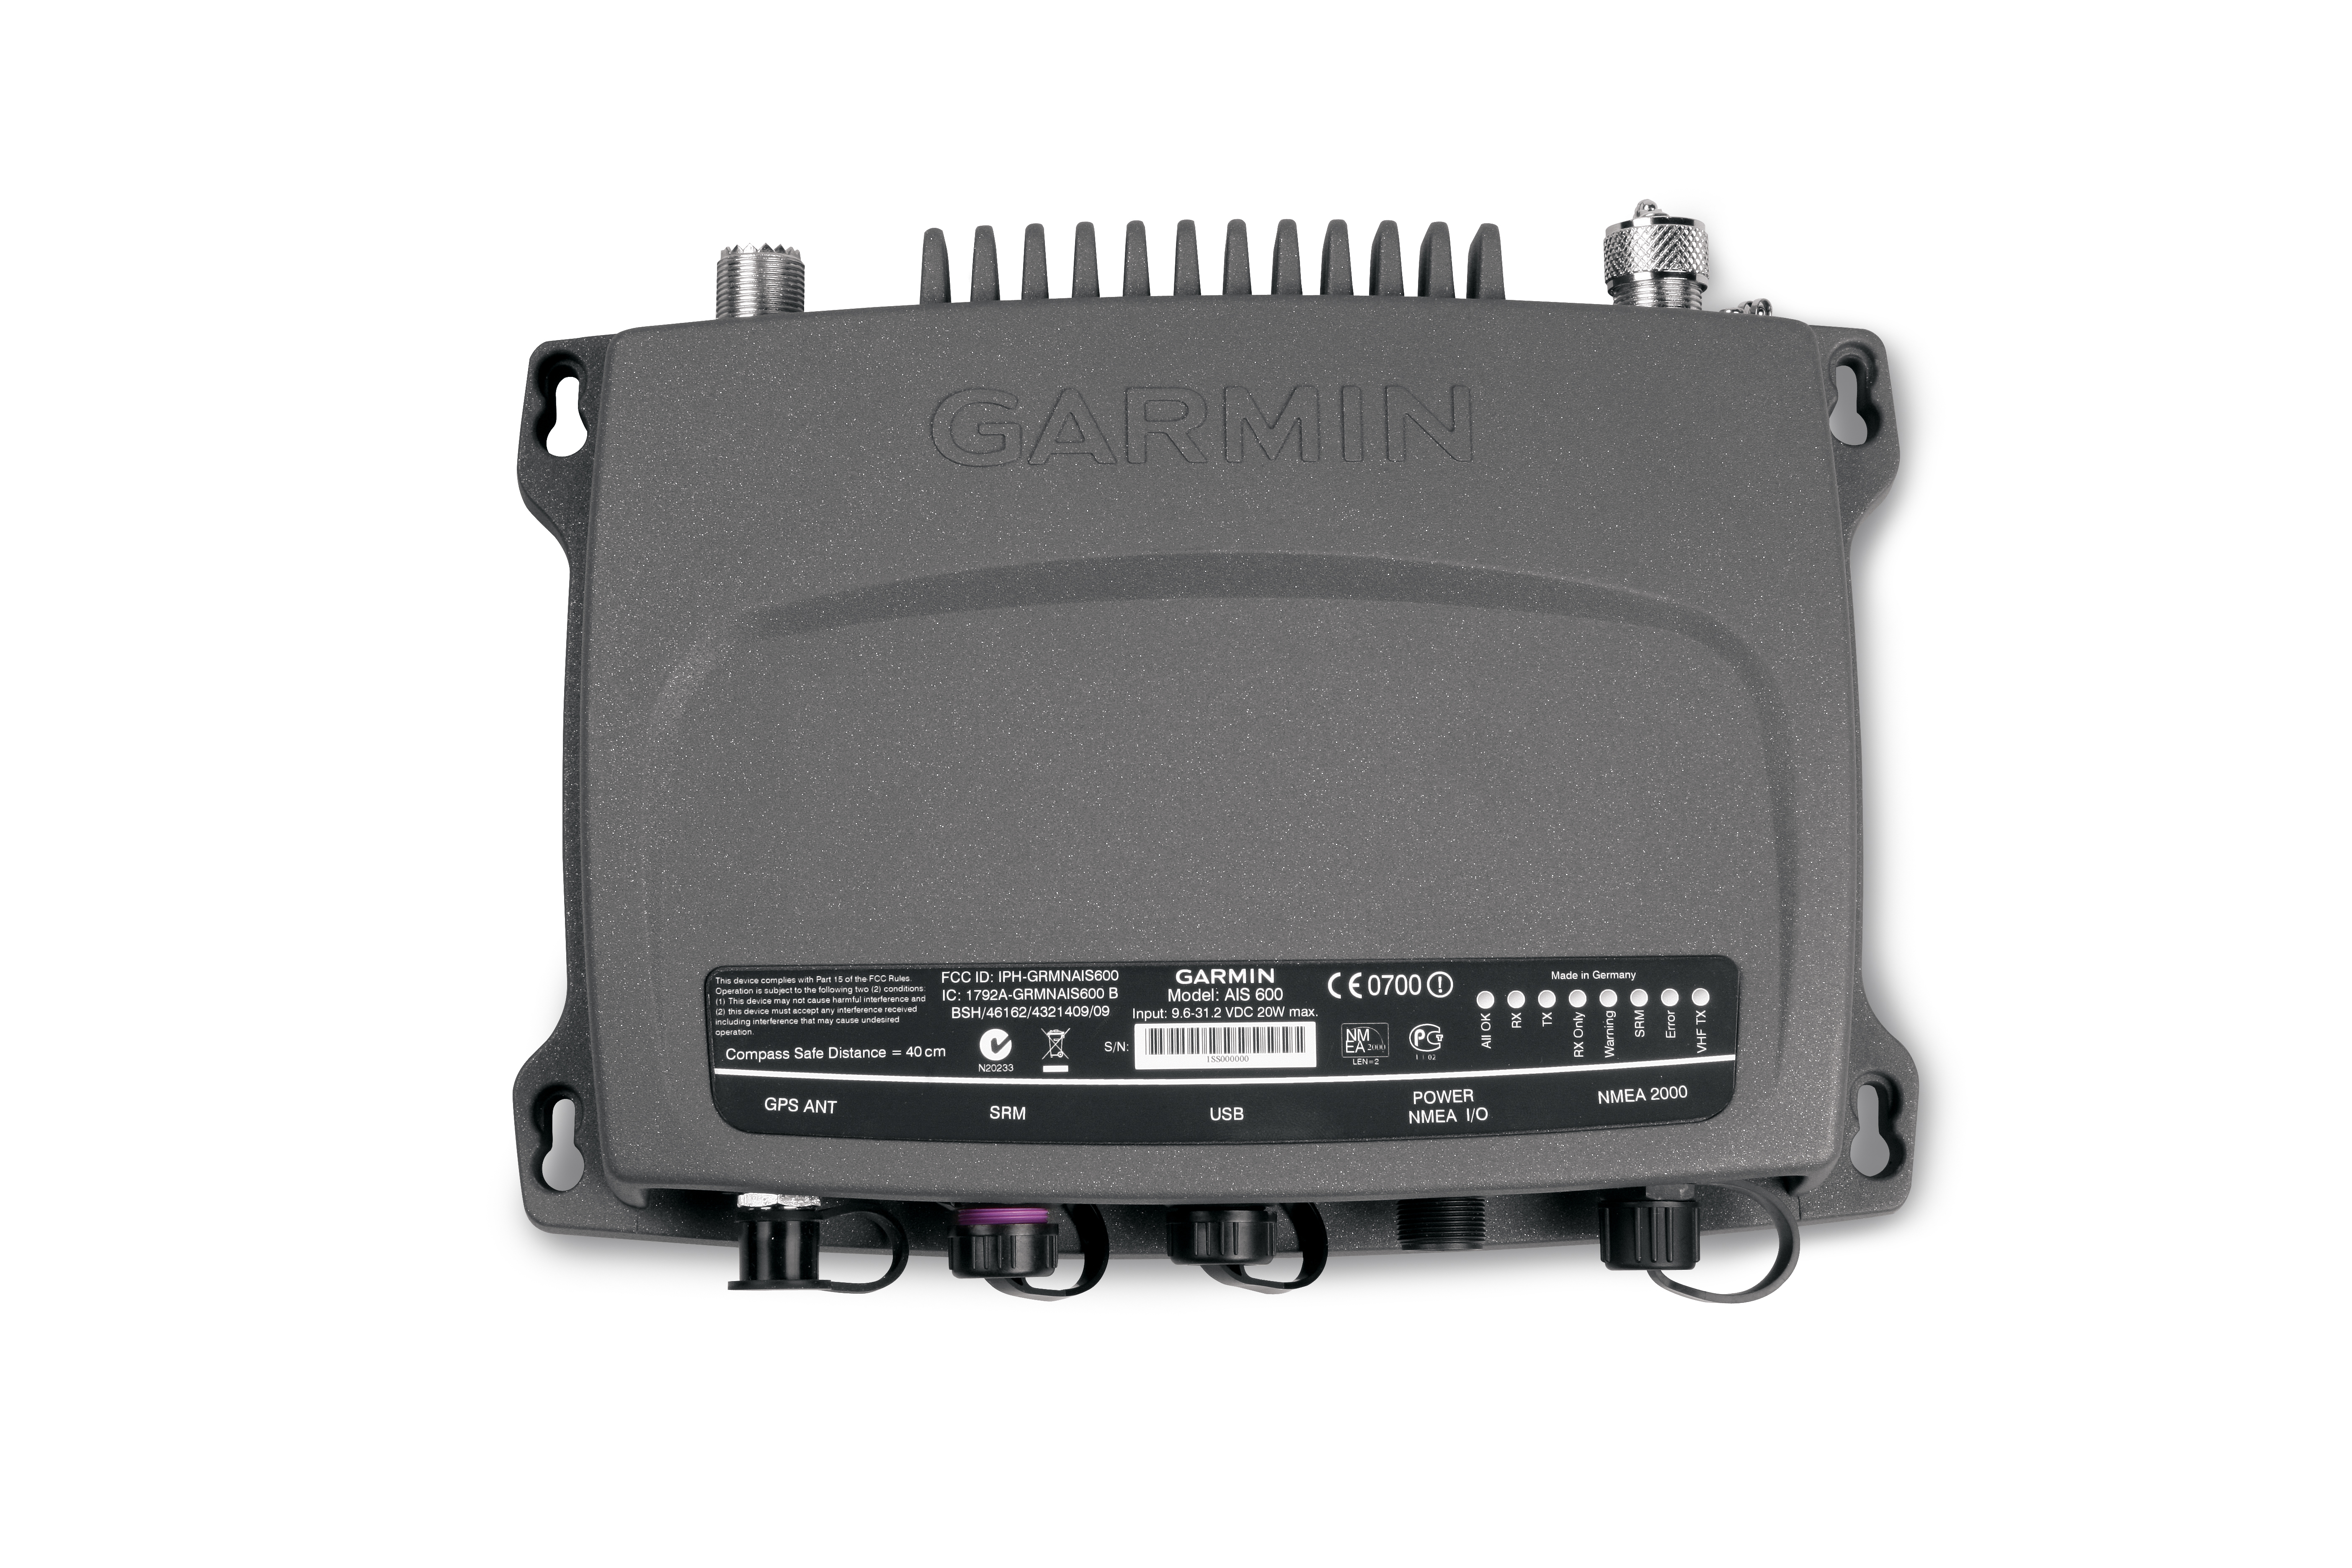 ais600 blackbox transceiver front view